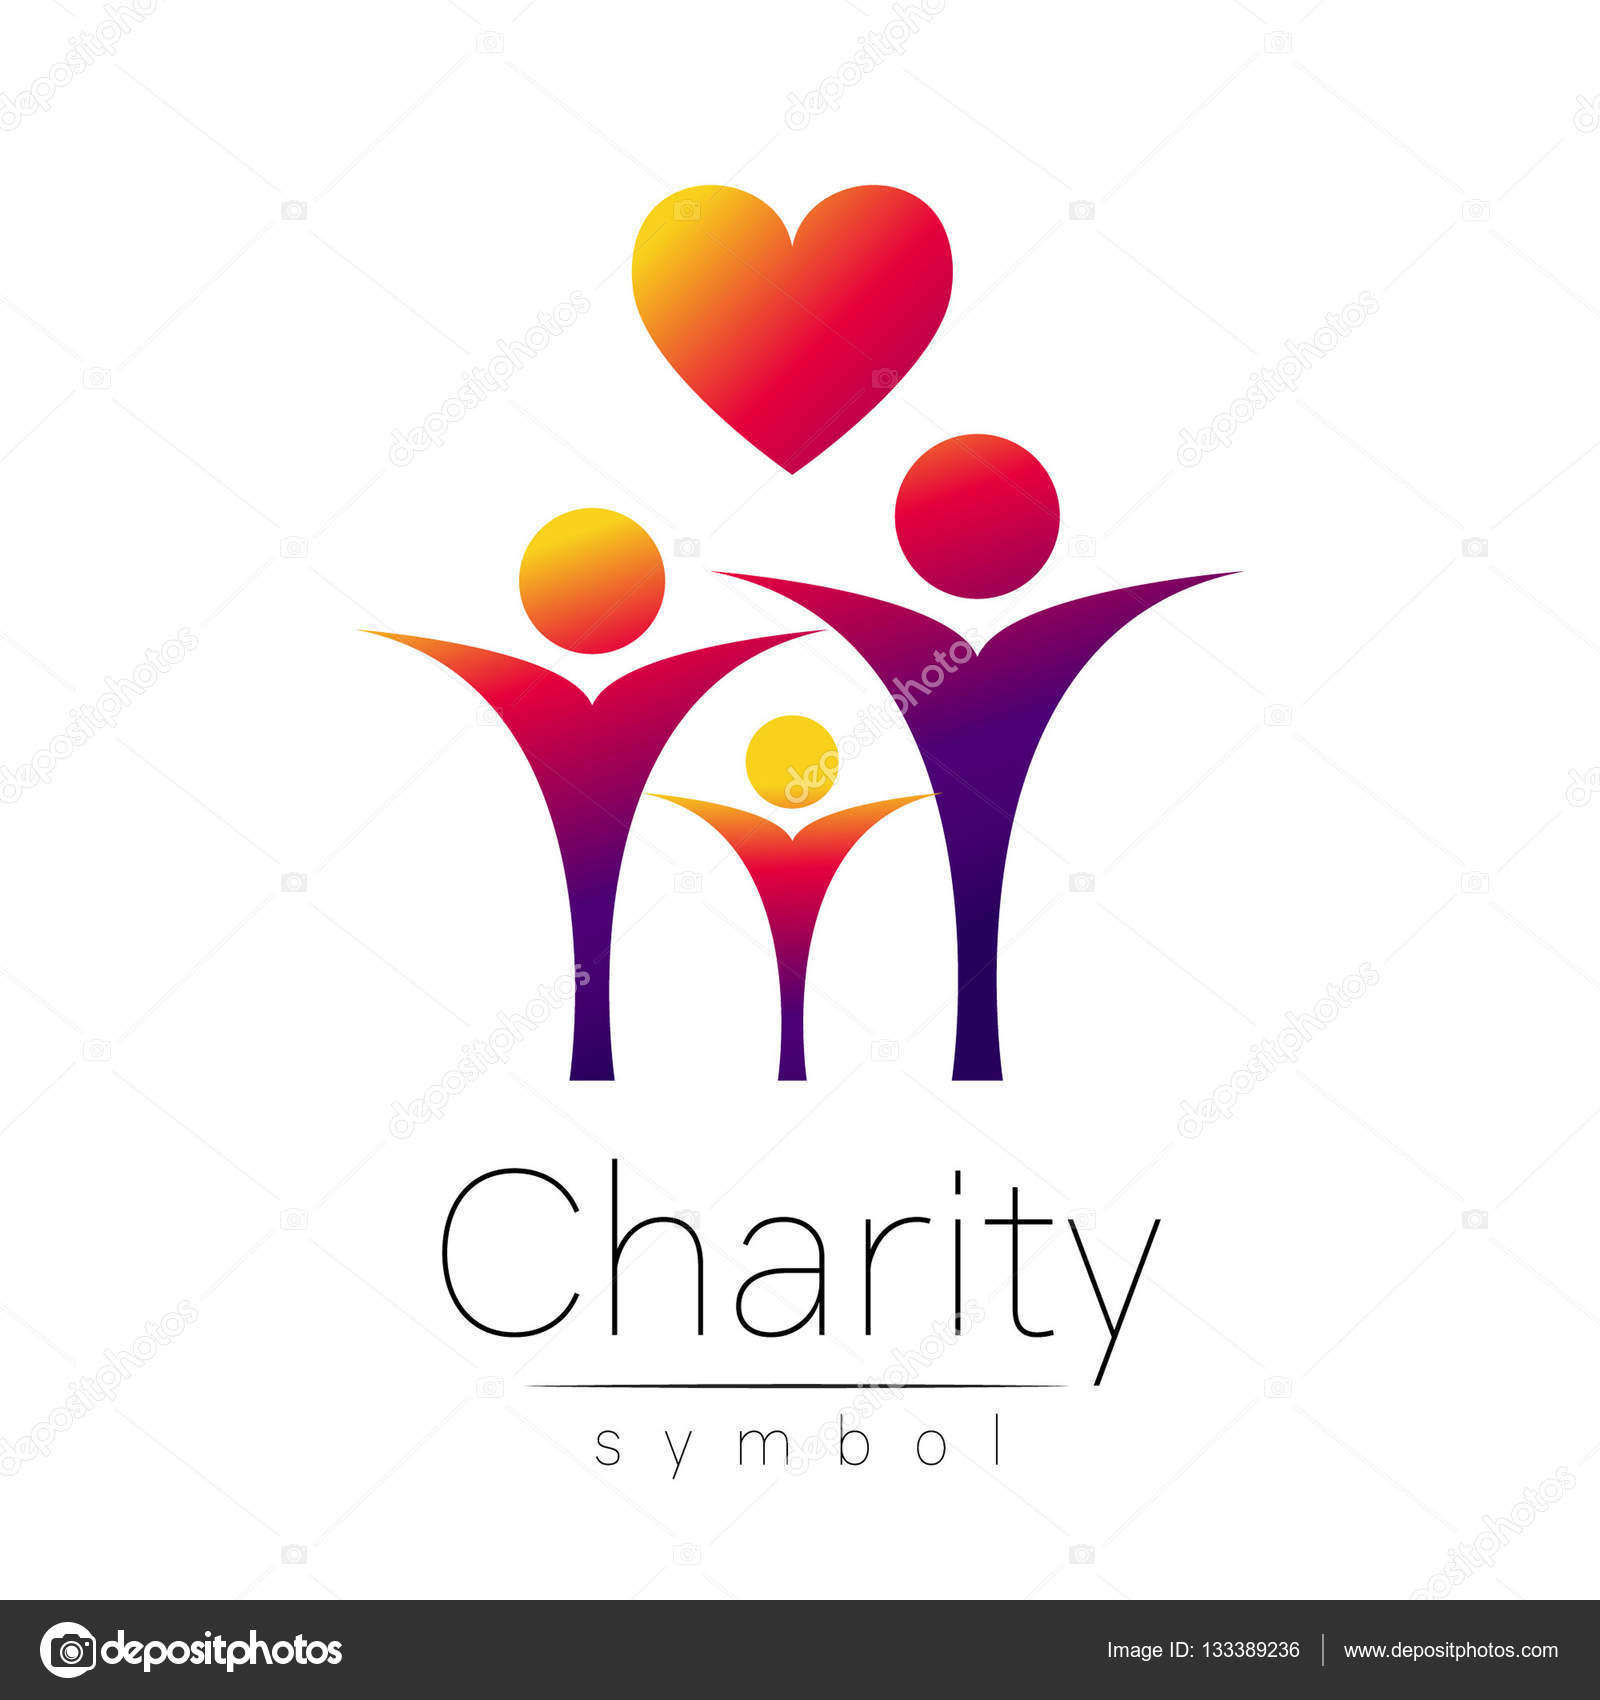 Vector Illustration Symbol Of Charitygn People Heart Isolated On